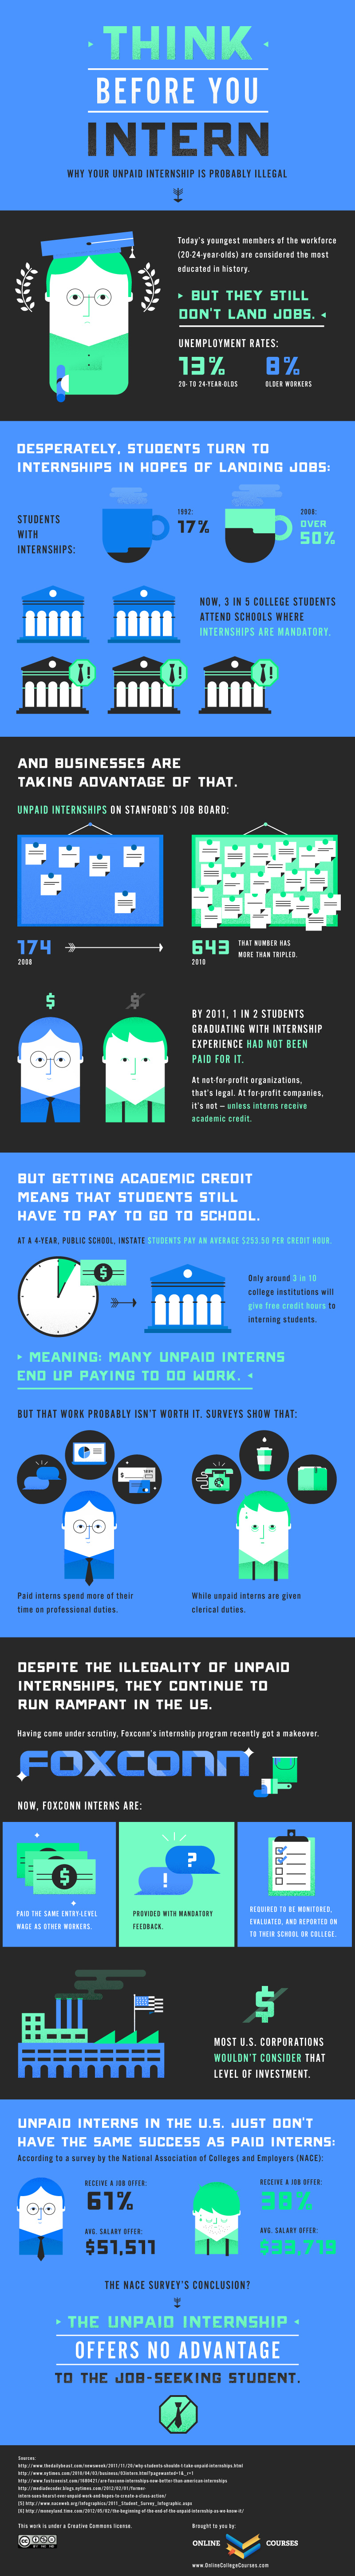 think before you intern  infographic